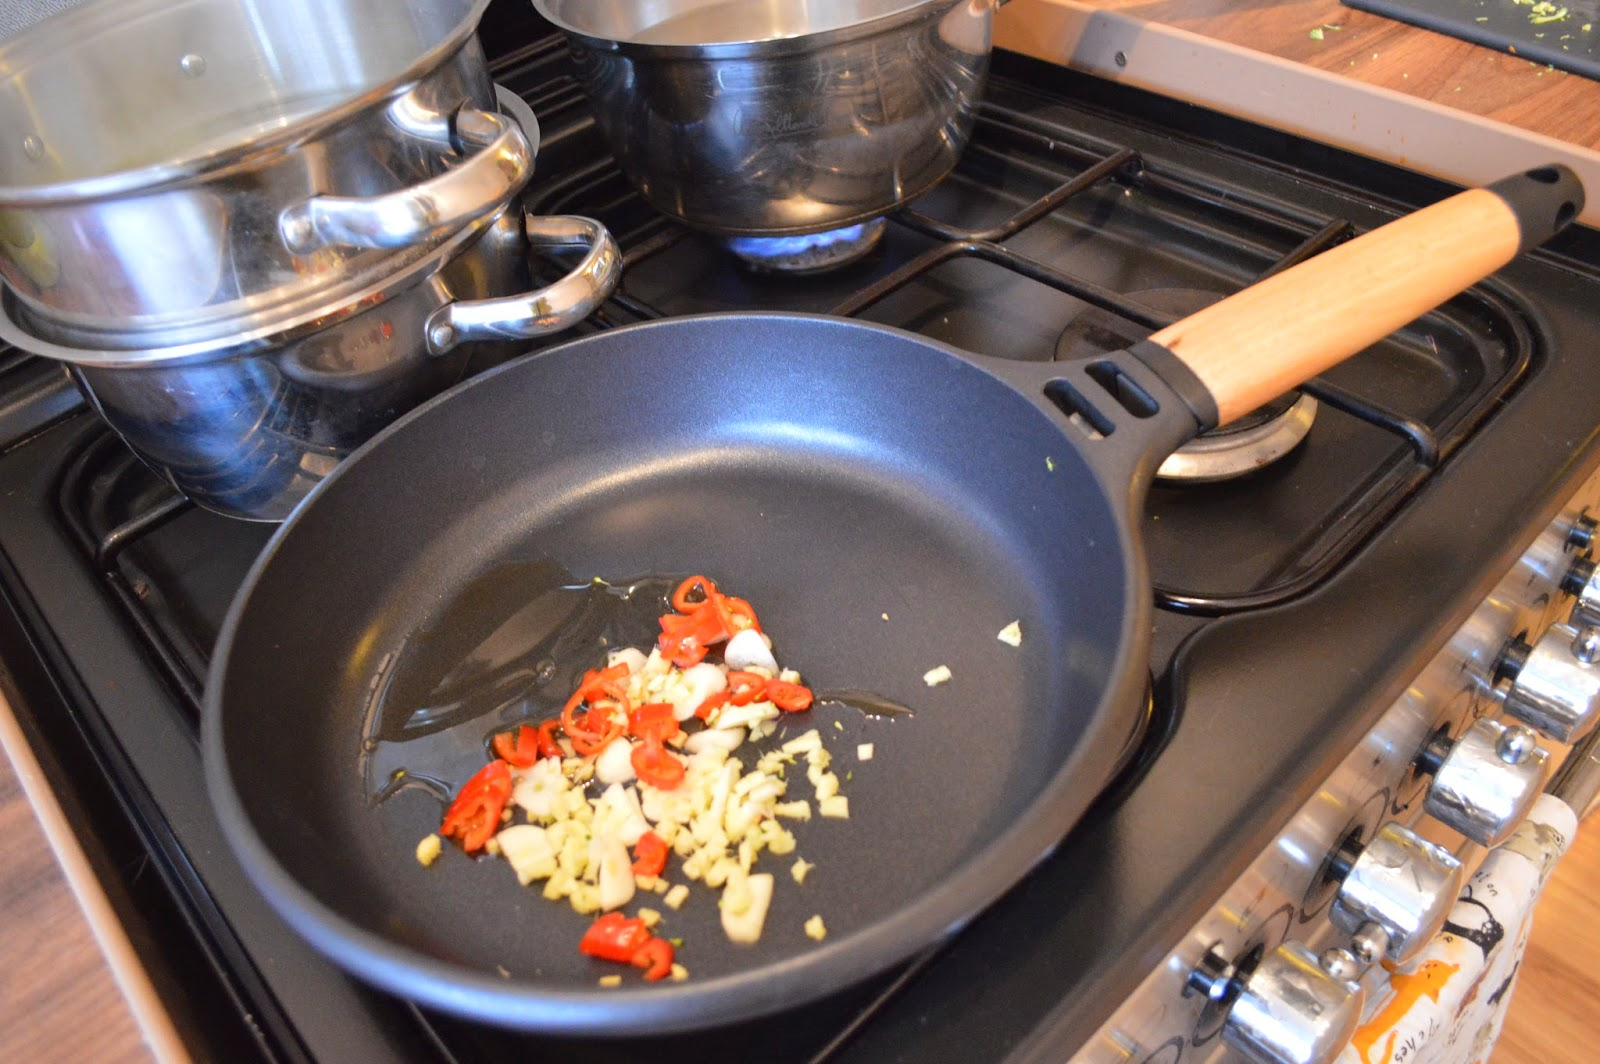 Ginger, Chilli and Garlic, stirfry, gingey bites, Diana Henry, A Change of Appetite, cookbook review, food blogger, gingey bites